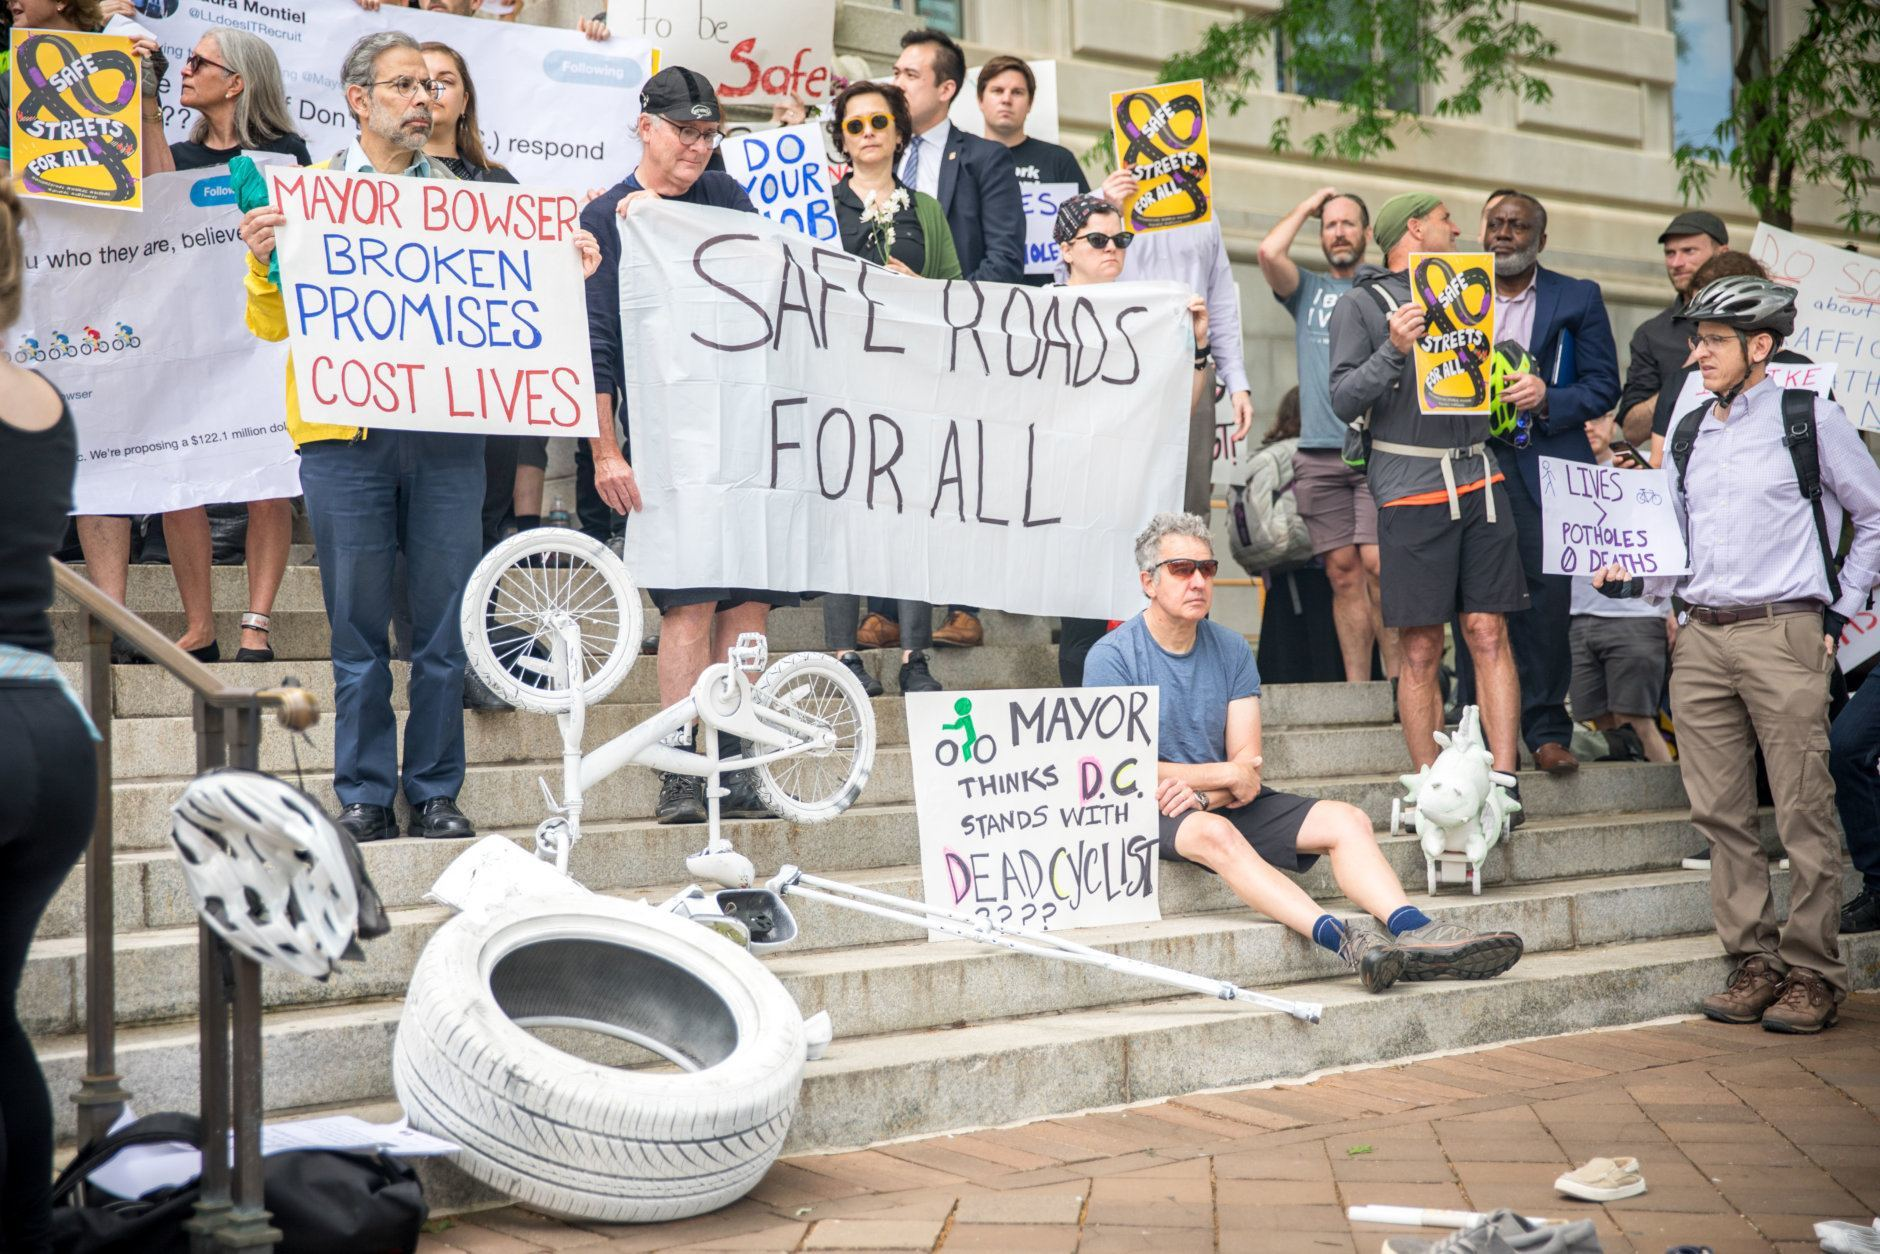 Protesters in front of the Wilson Building at Friday afternoon's demonstration for safe streets. (Courtesy Aimee Custis/Aimee Custis Photography)